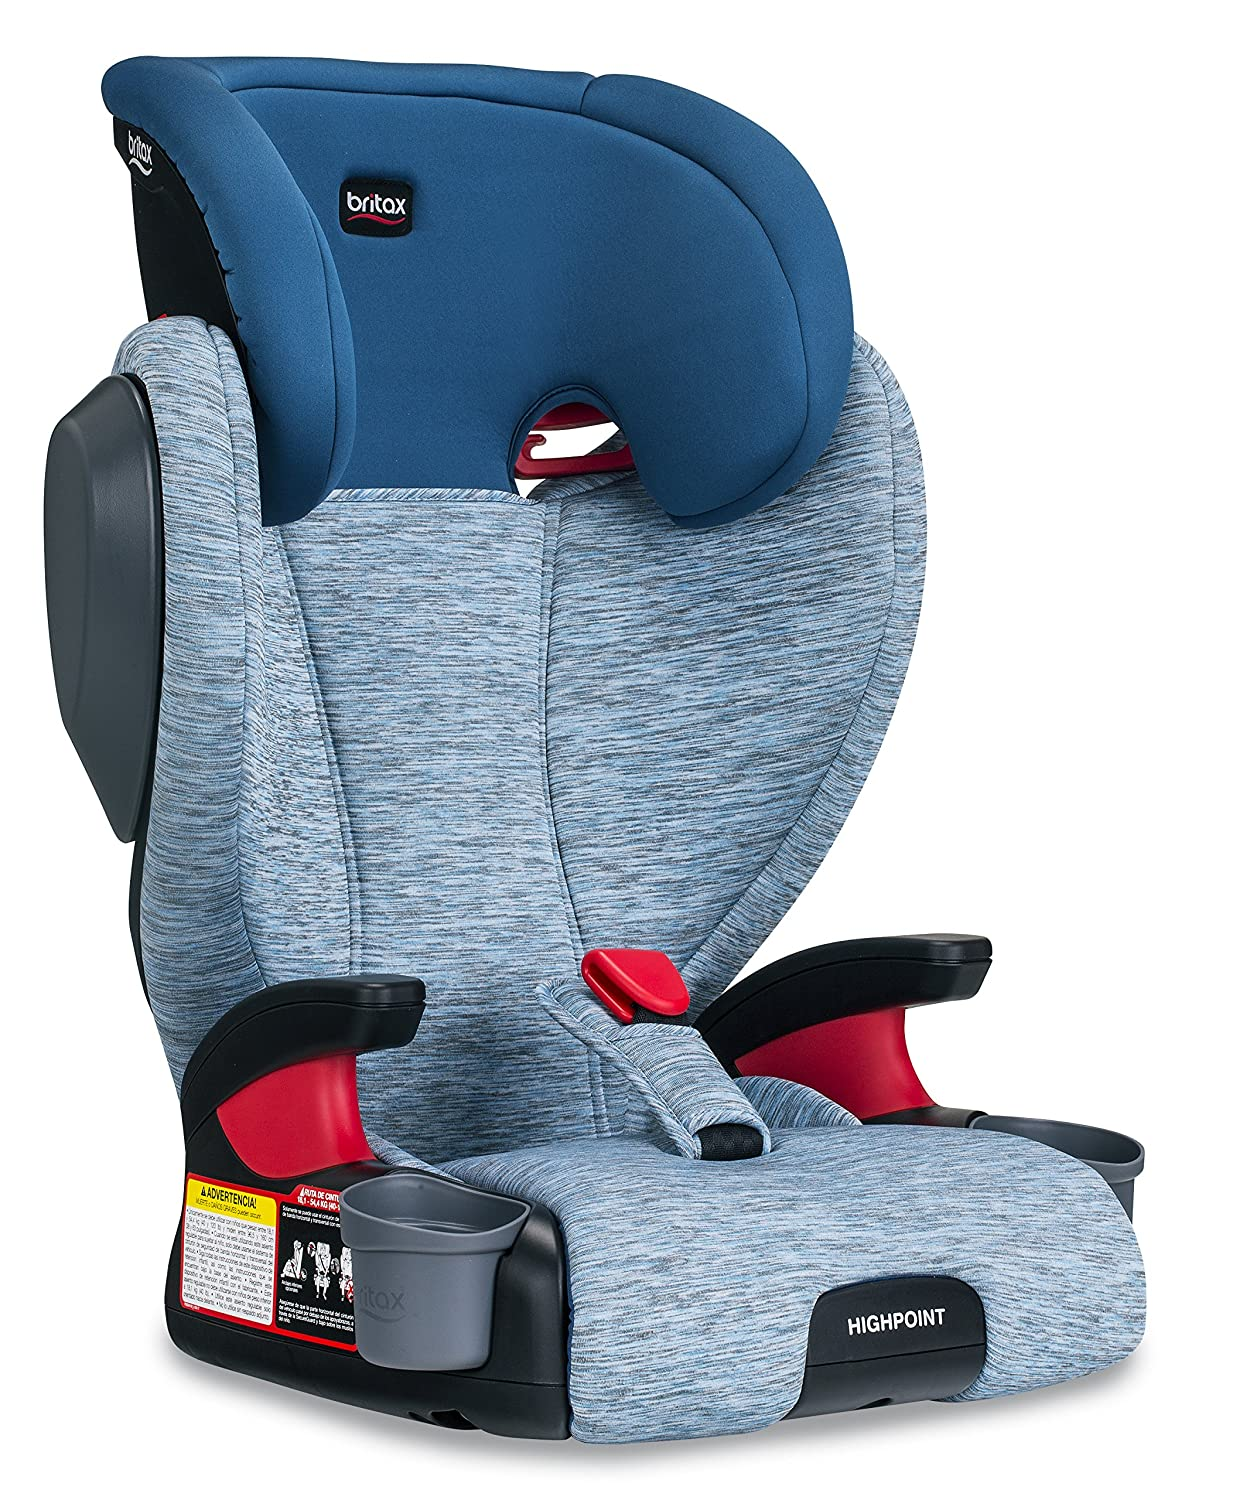 Britax Highpoint Belt-Positioning Booster Seat, Asher E1A668T